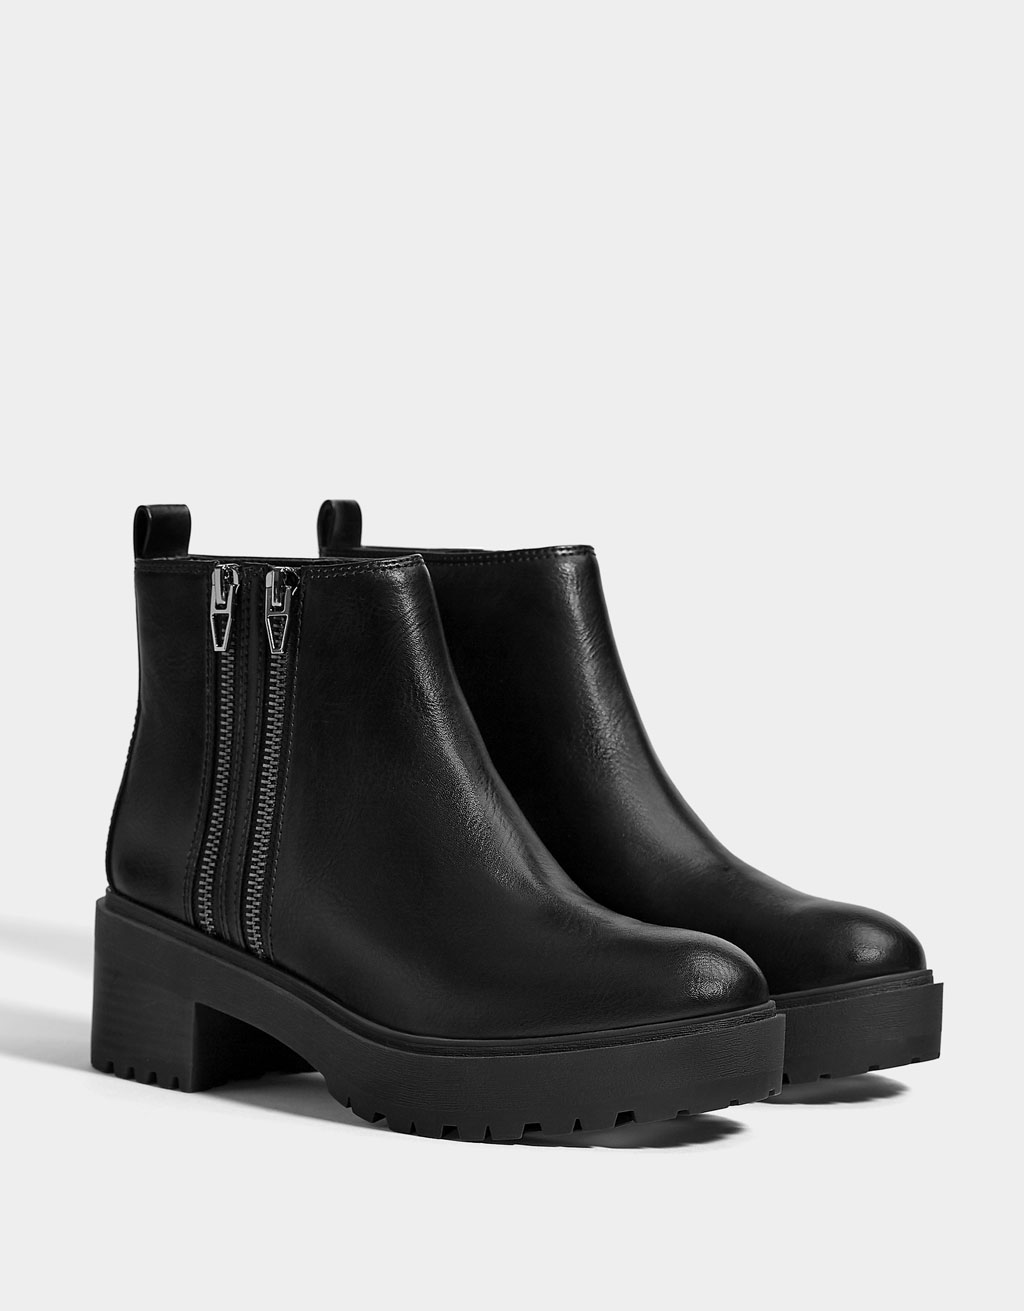 Platform ankle boots with a zip detail